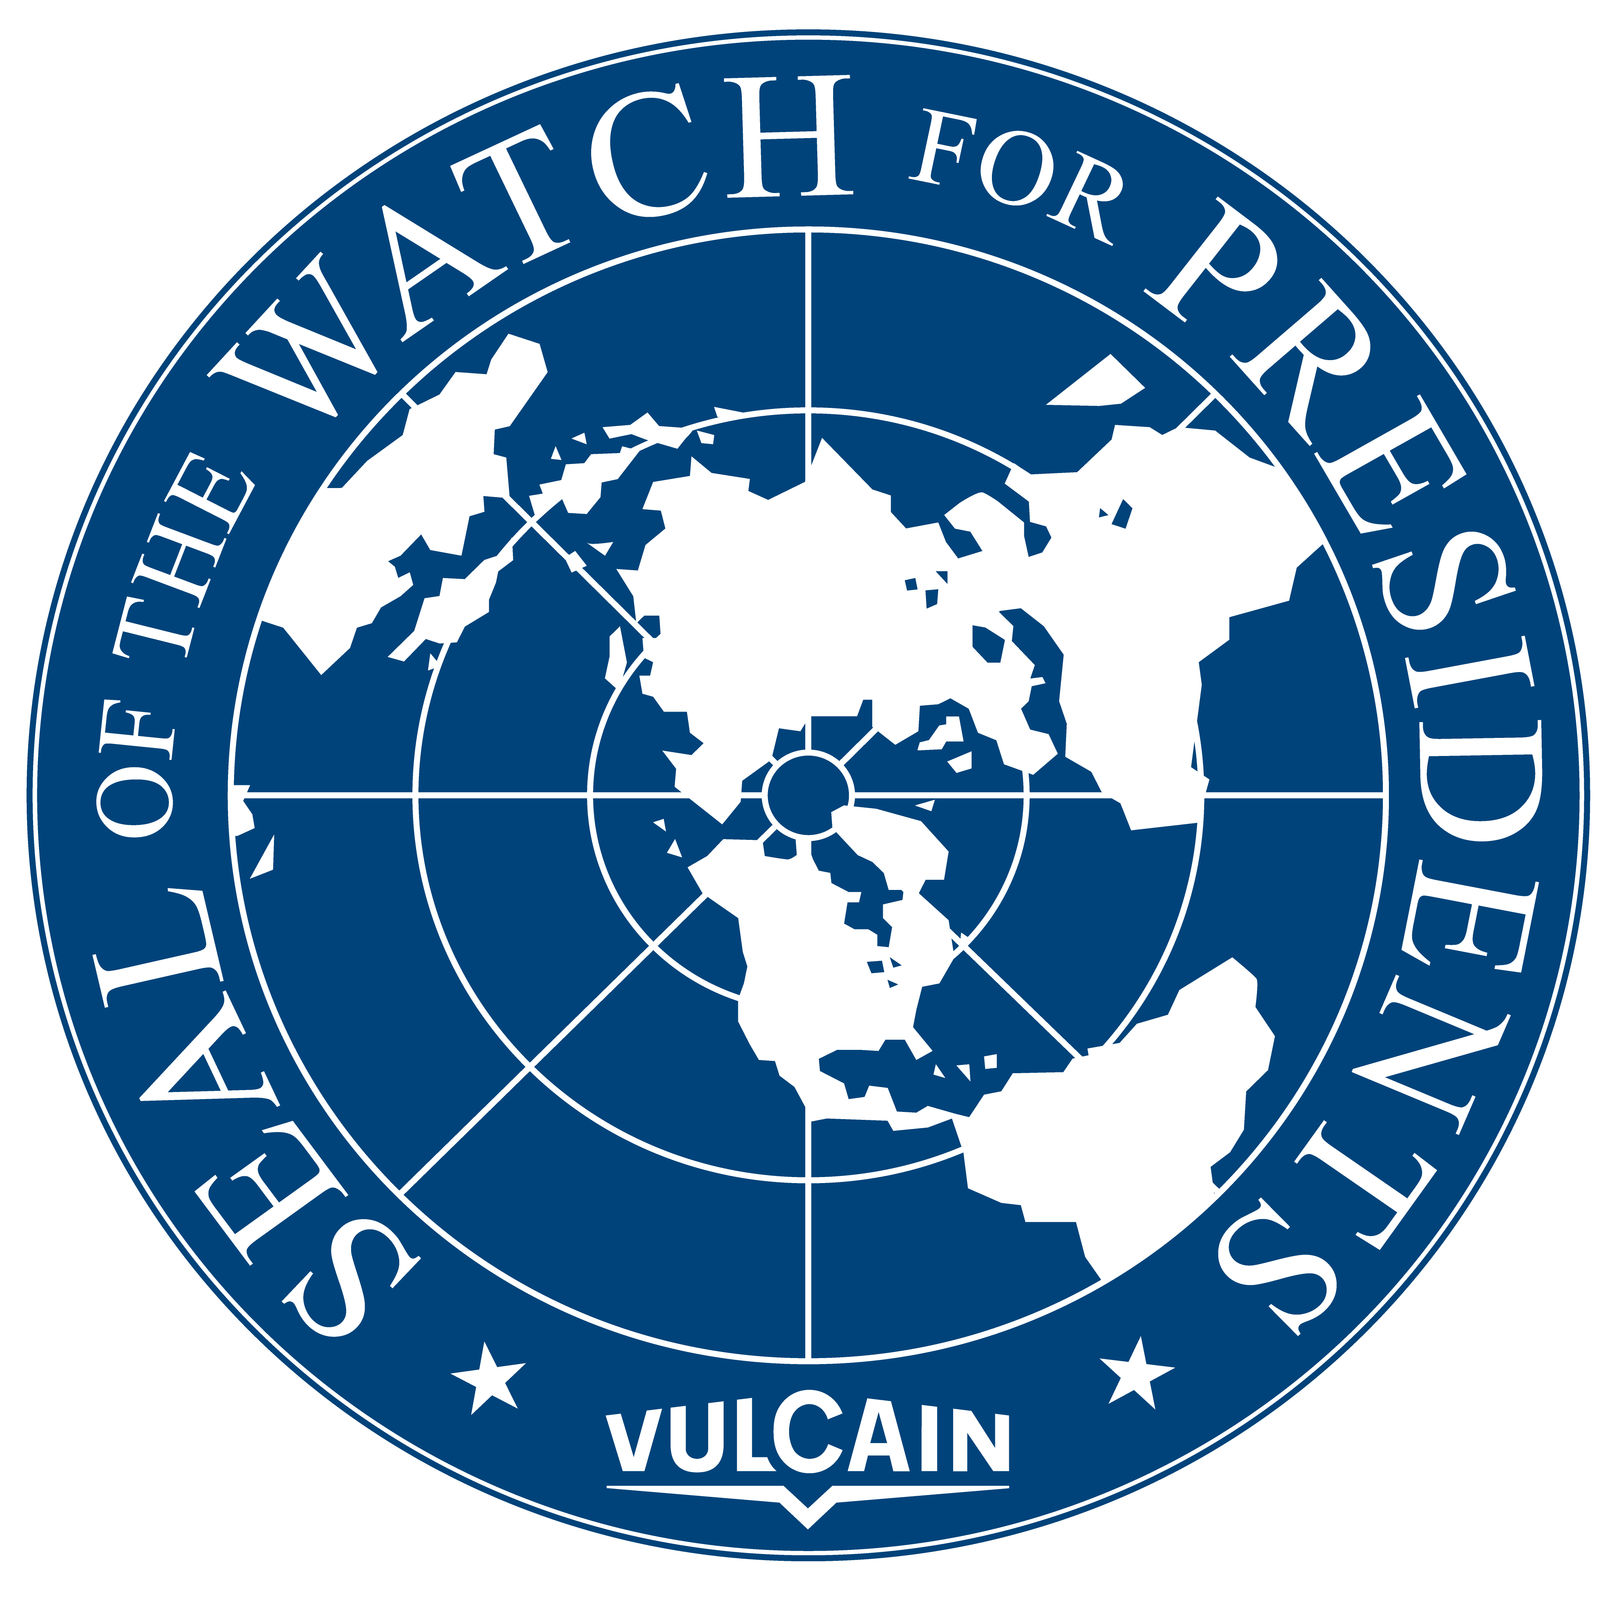 Vulcain Watches (Bild 1)